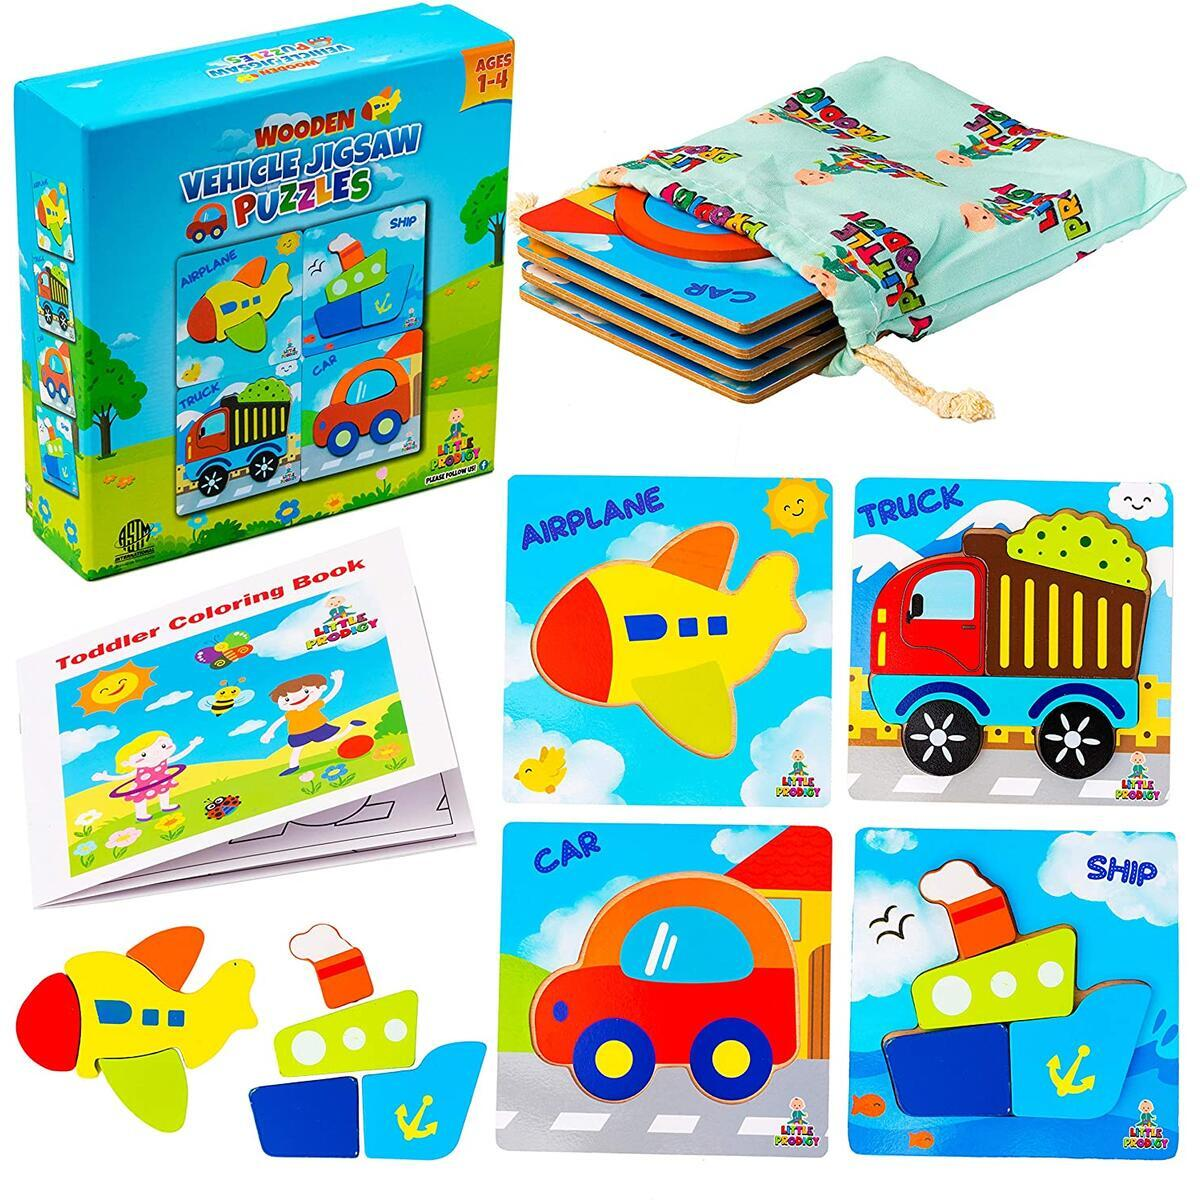 Wooden Vehicle Puzzles for Toddlers